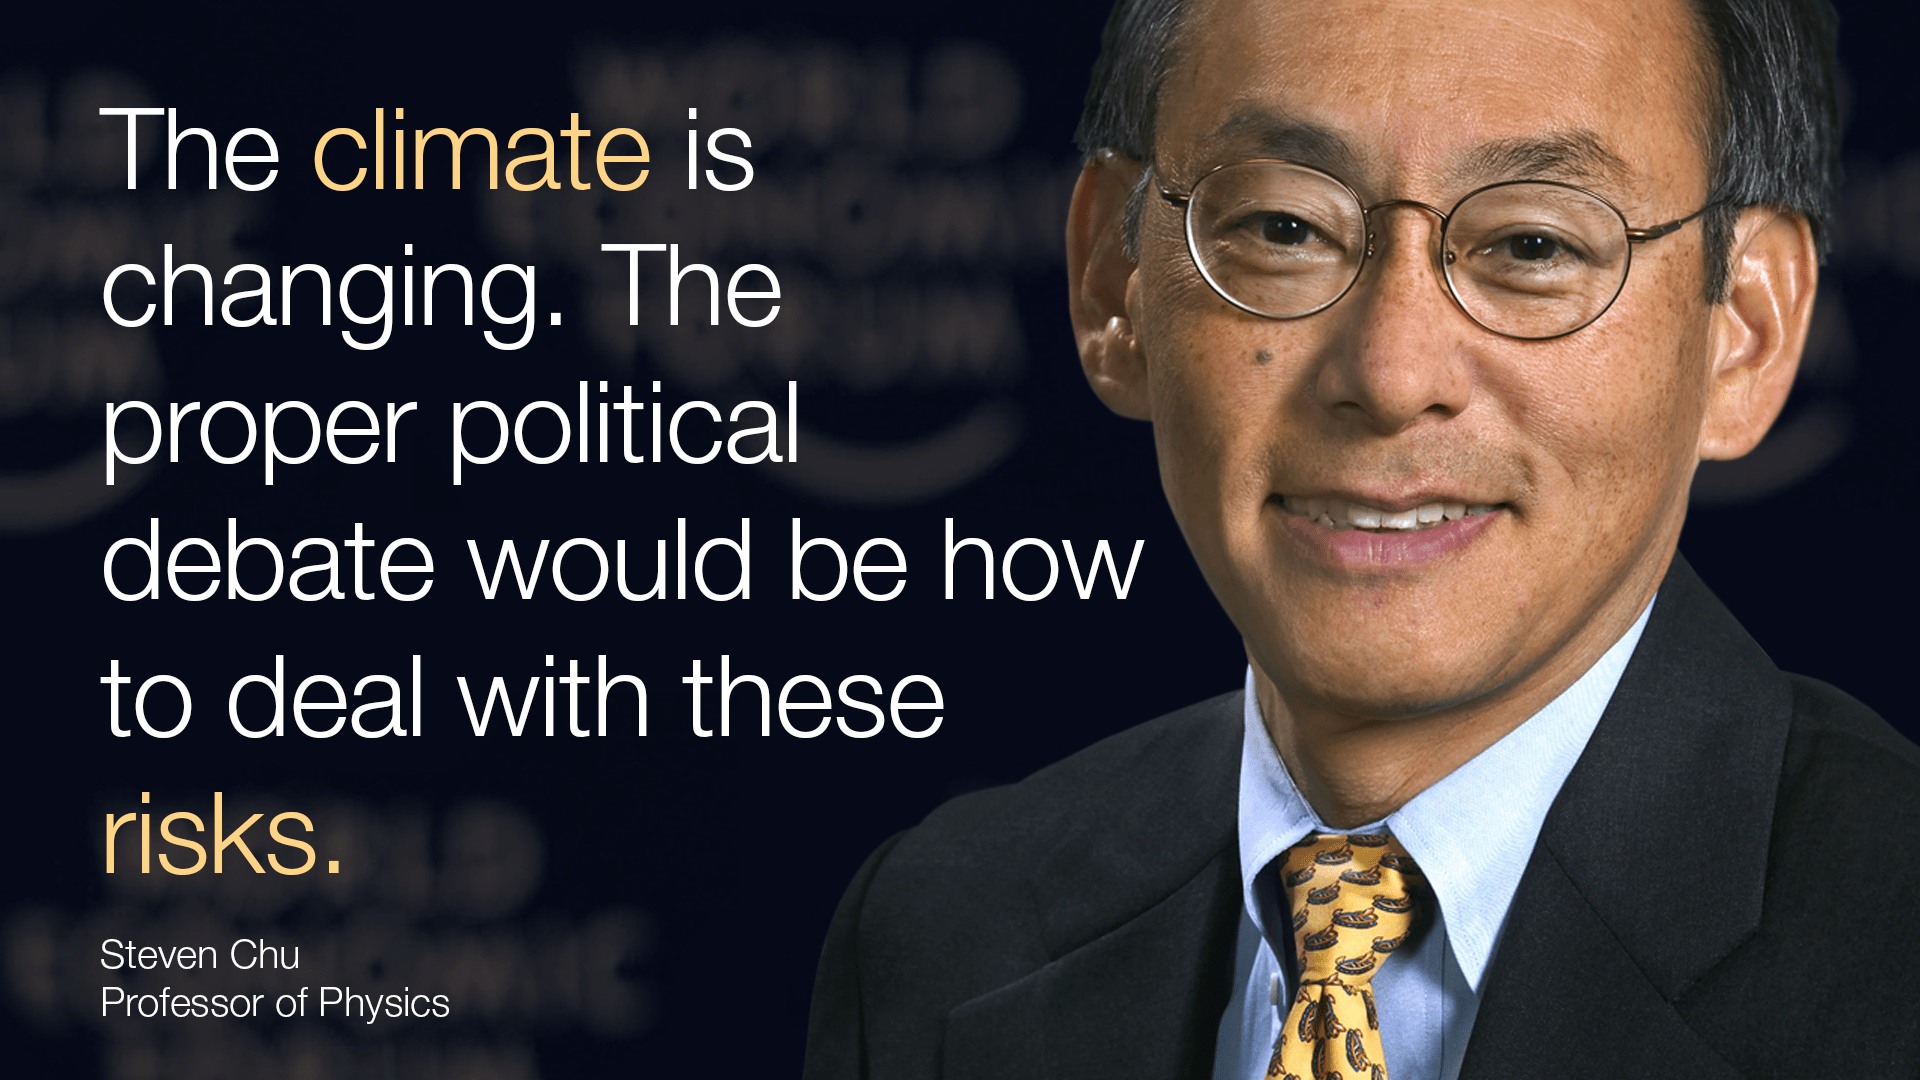 Economics Quotes Wallpapers 15 Quotes On Climate Change By World Leaders World